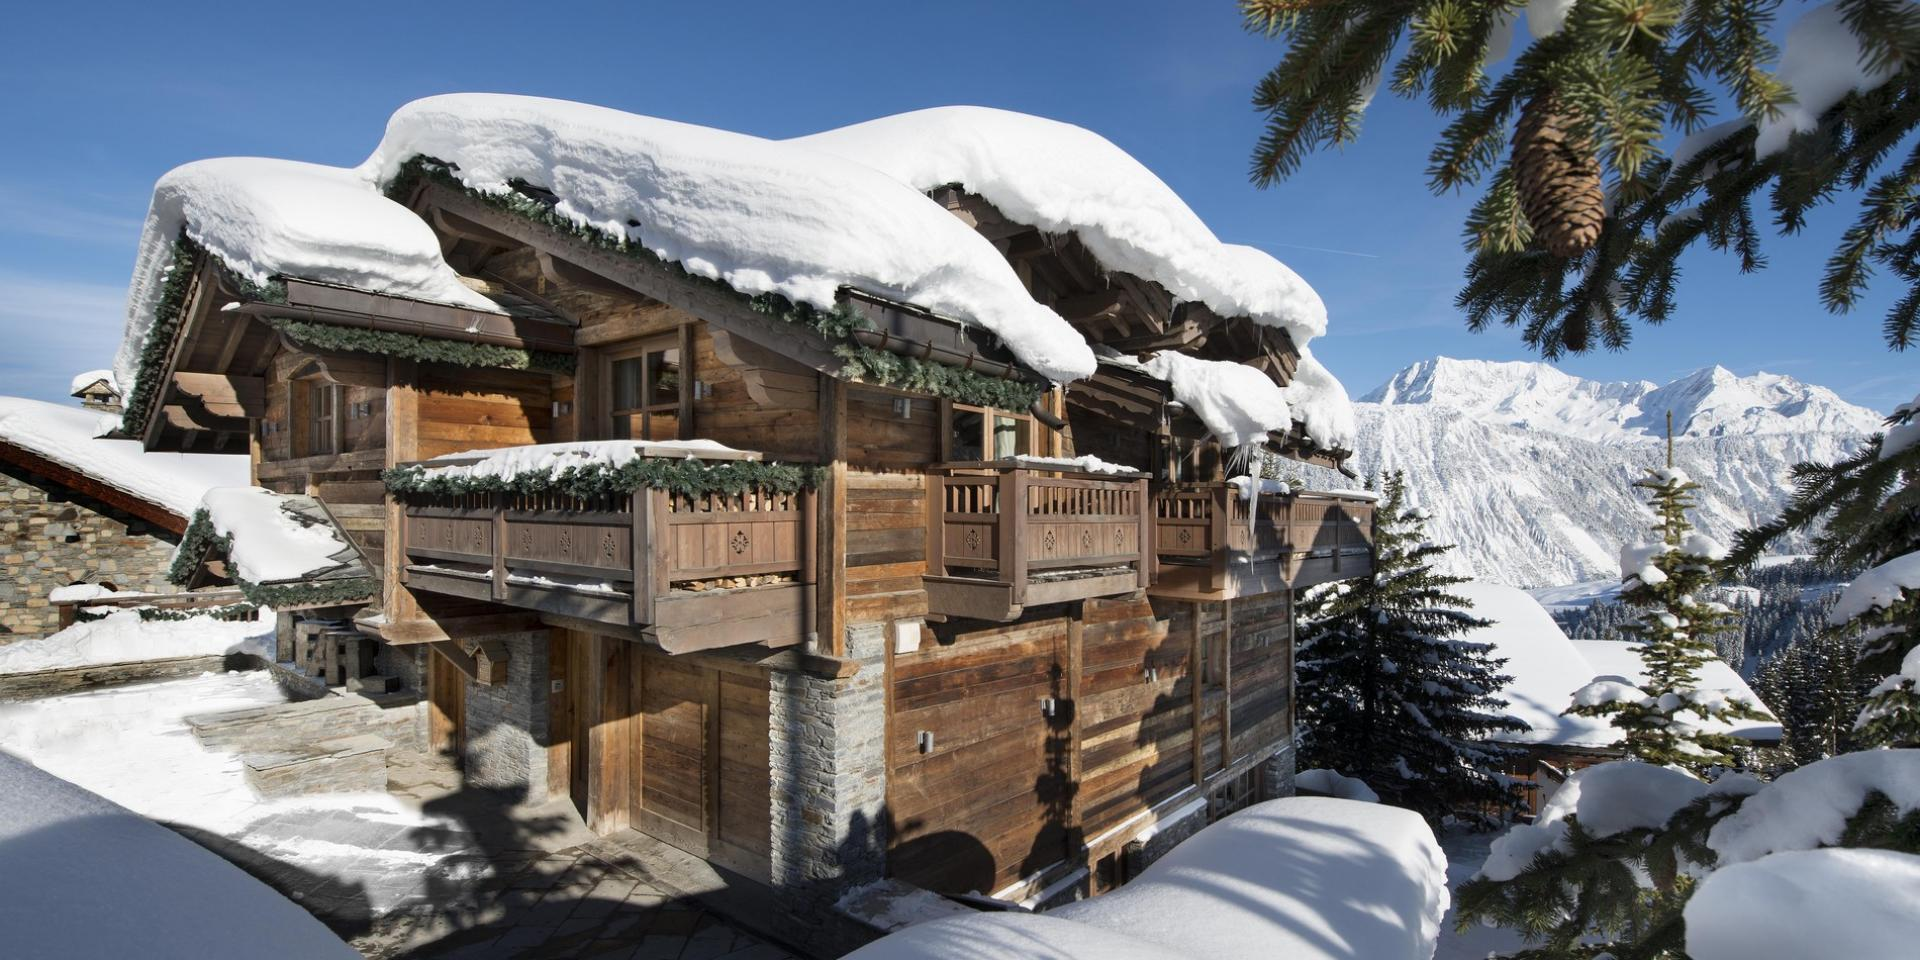 SKI CHALETS COURCHEVEL